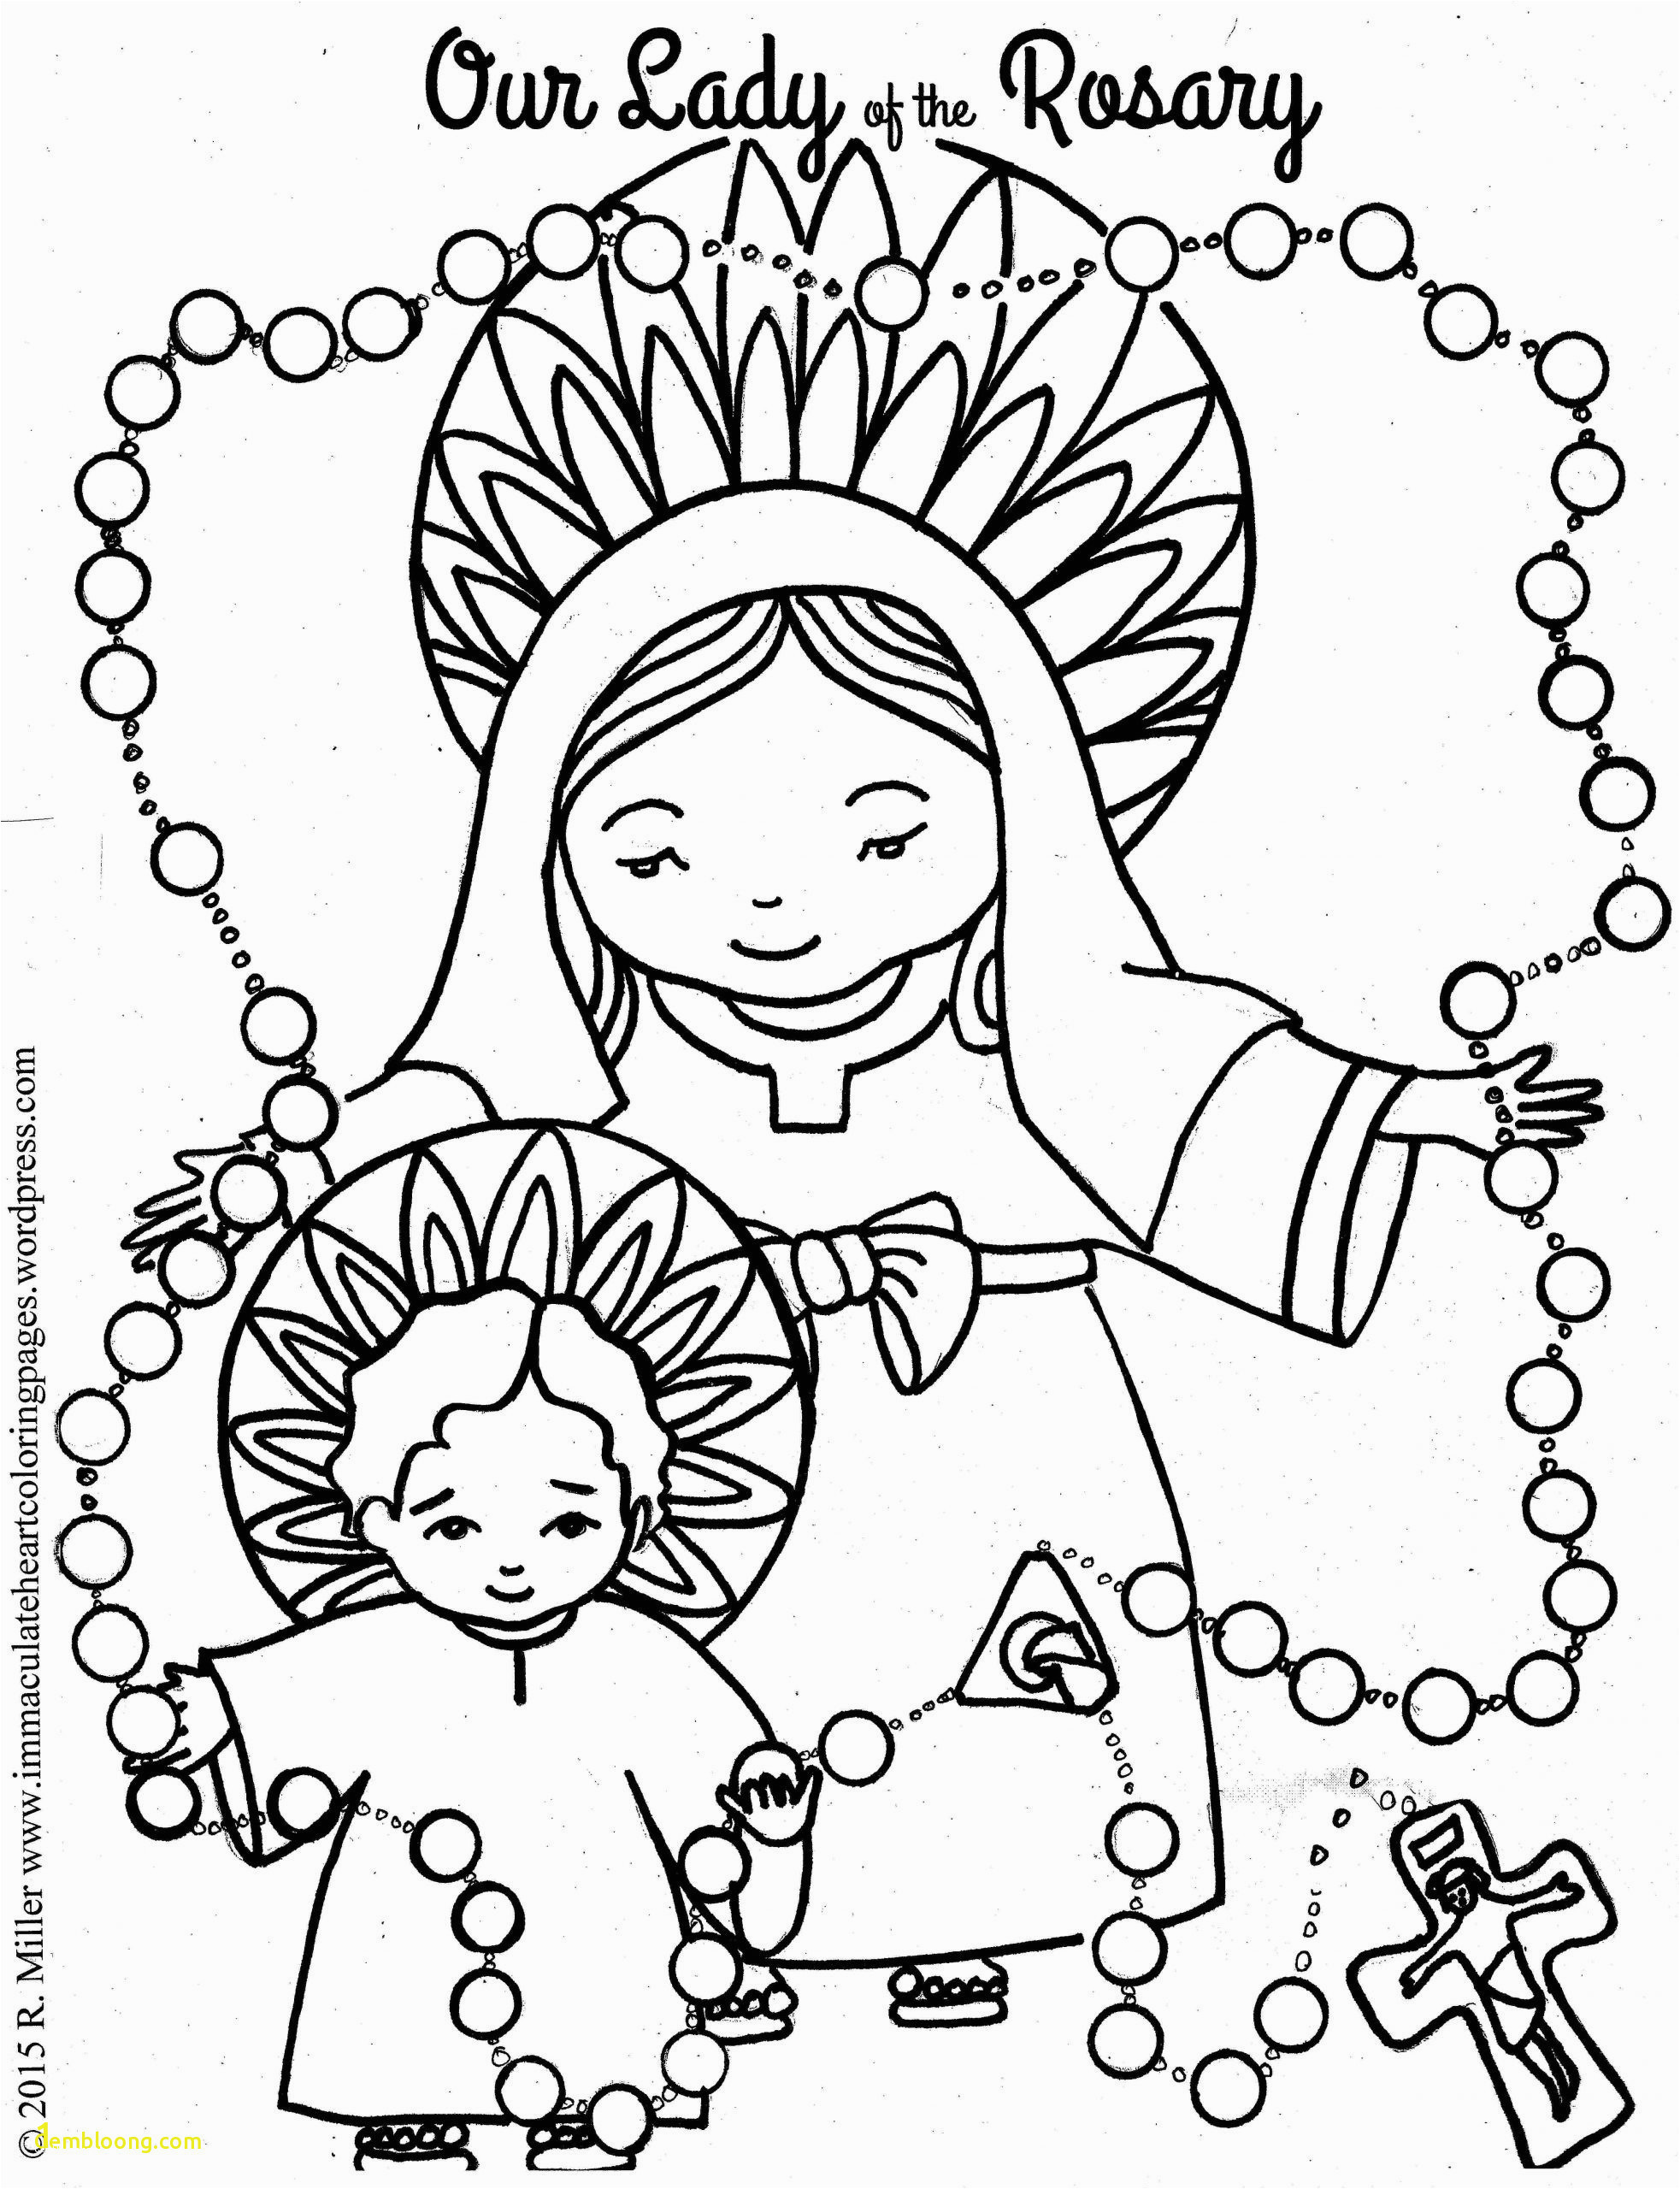 hello kitty mermaid coloring pages fresh coloring pages little mermaid coloring book coloring pagess of hello kitty mermaid coloring pages